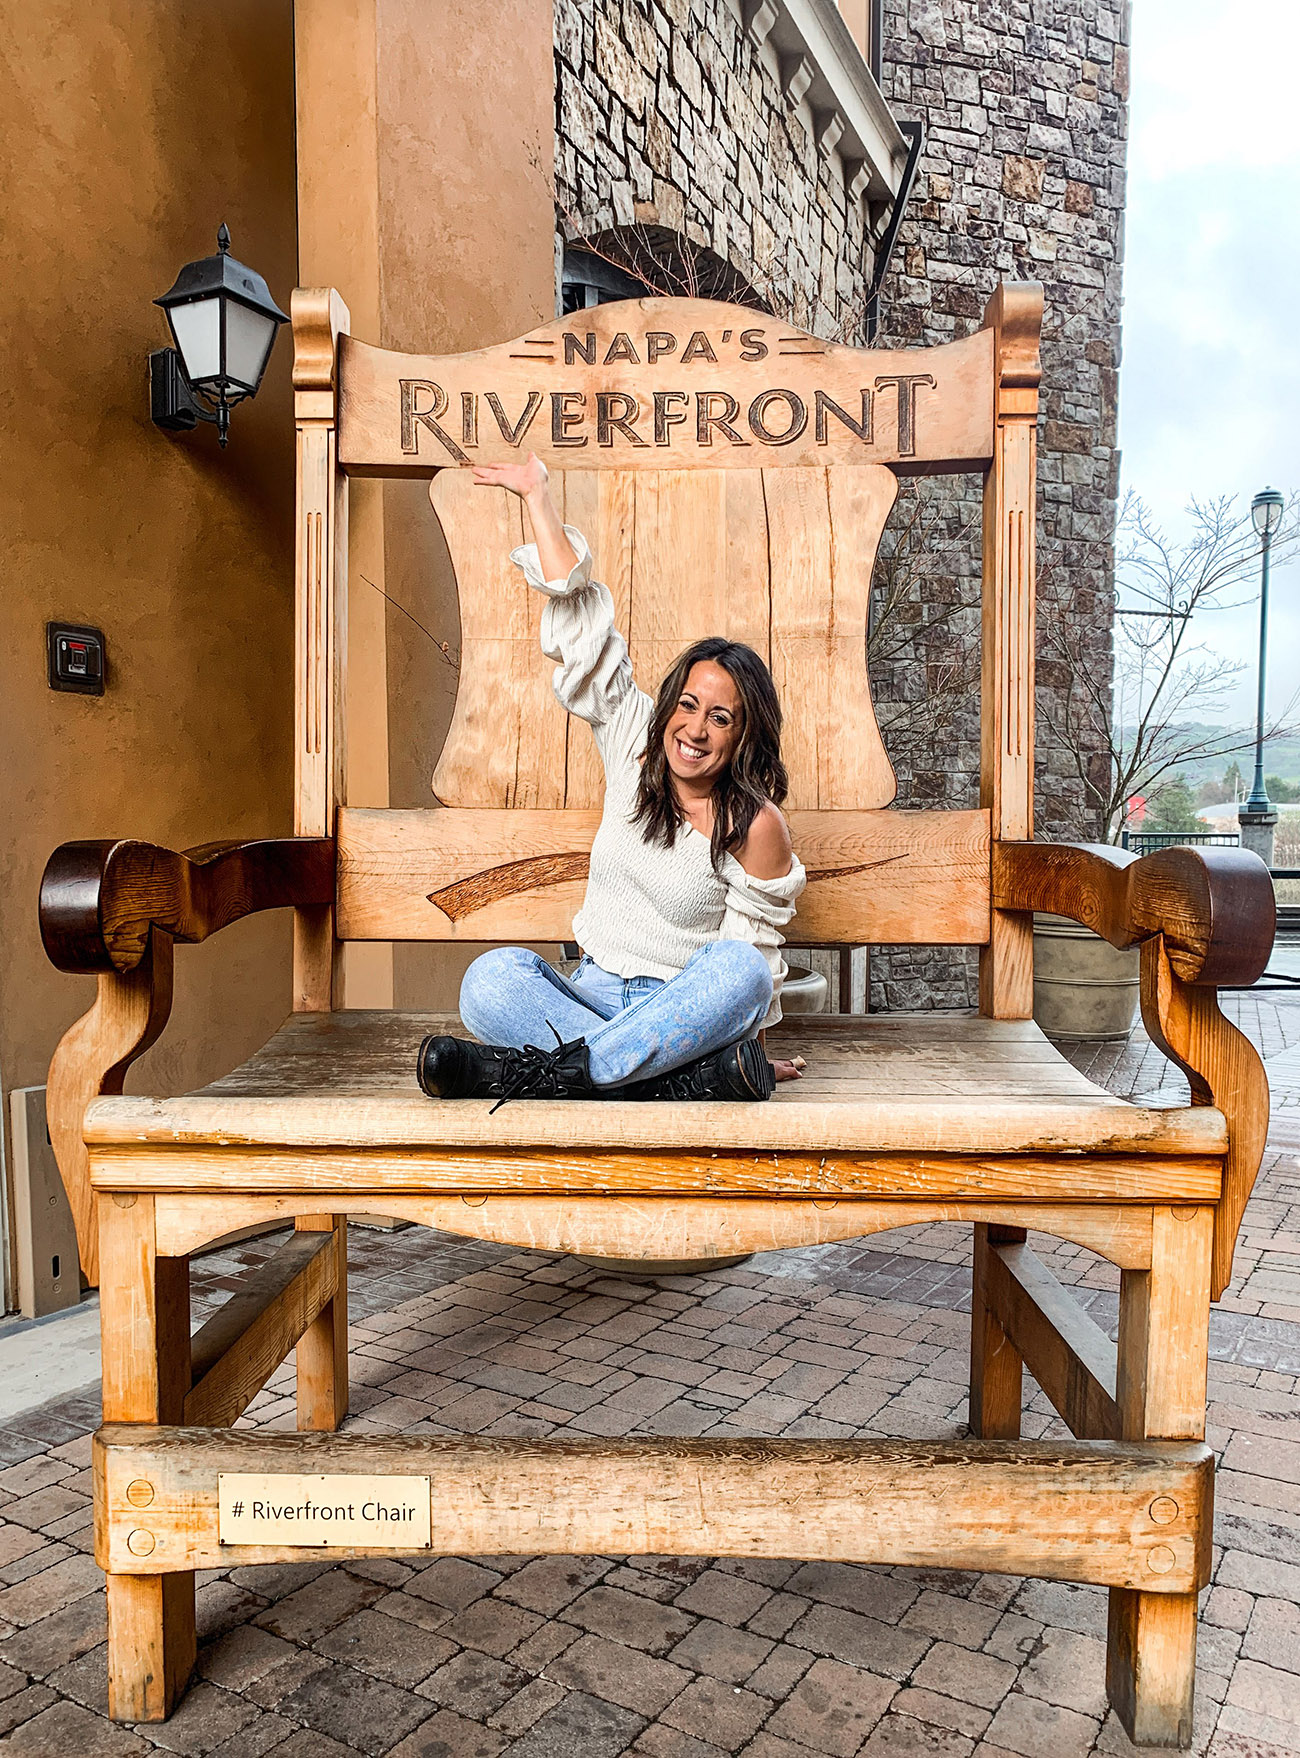 Napa Riverfront Chair